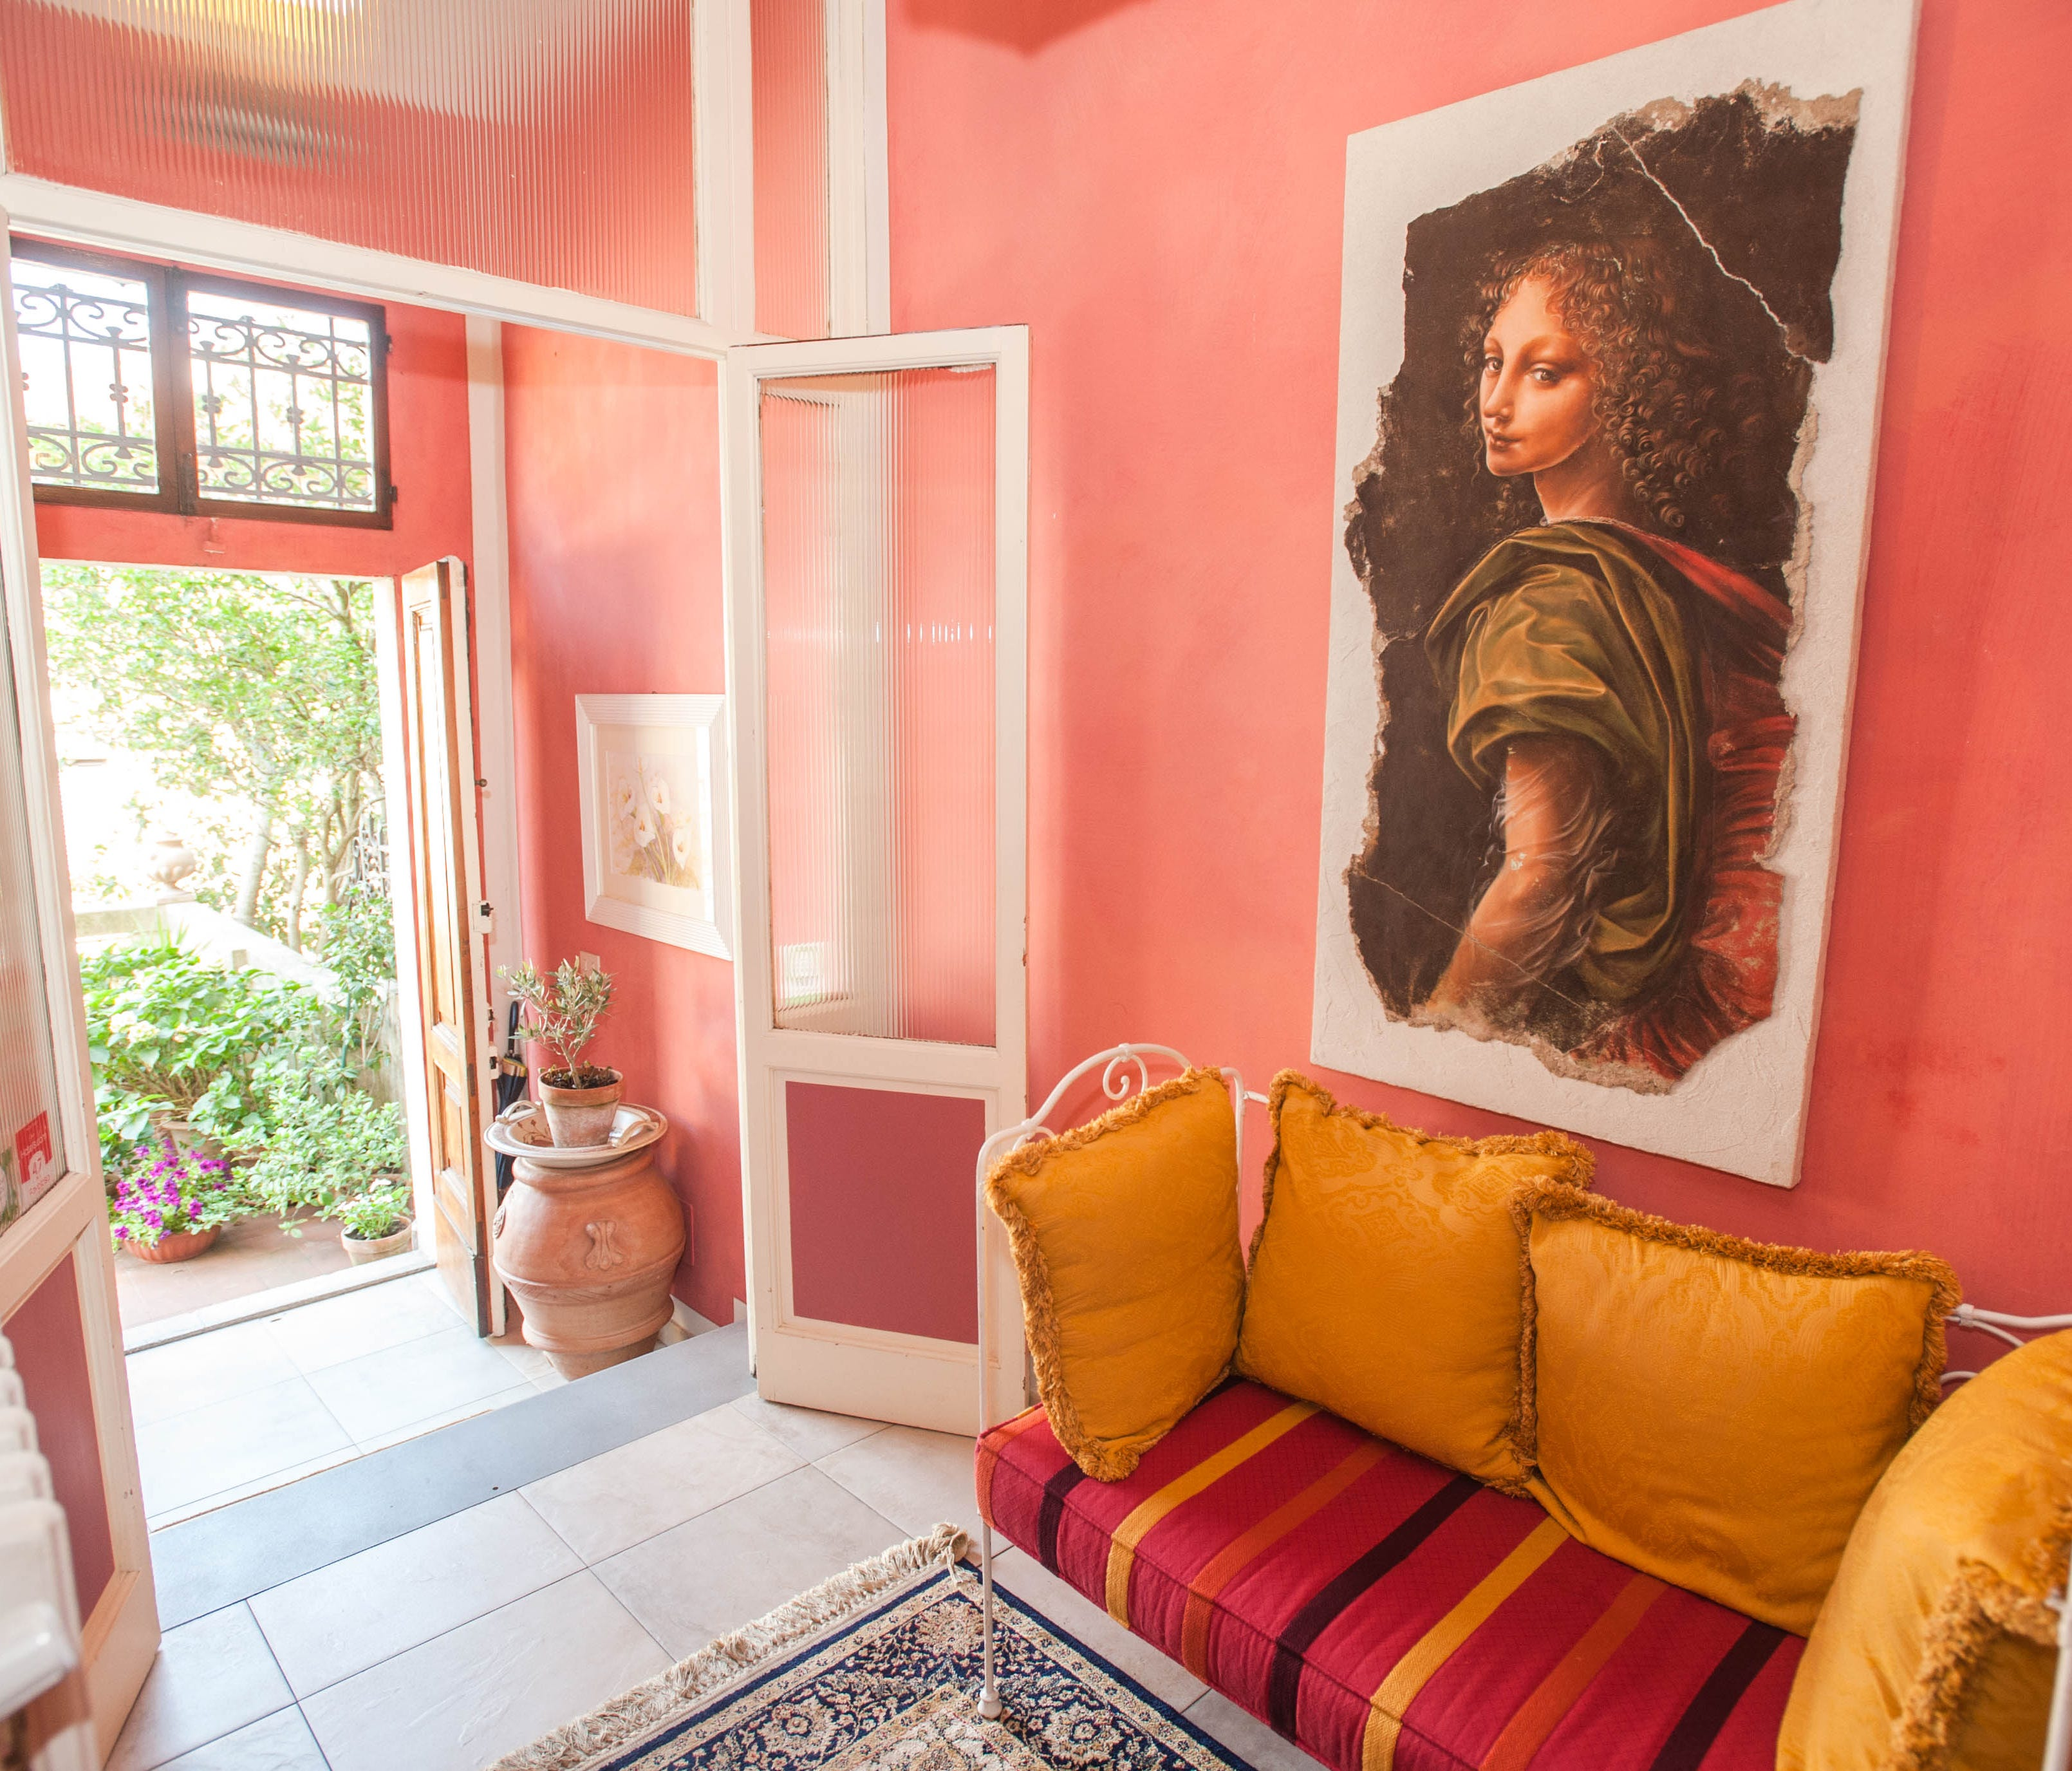 B&B Monte Oliveto, Florence, Italy: Located in a lovely home on the south side of the Arno River, the four-room B&B Monte Oliveto is just as delightful outside as it is on the inside. Walk through the iron gate and go up the stairs that lead to a bea